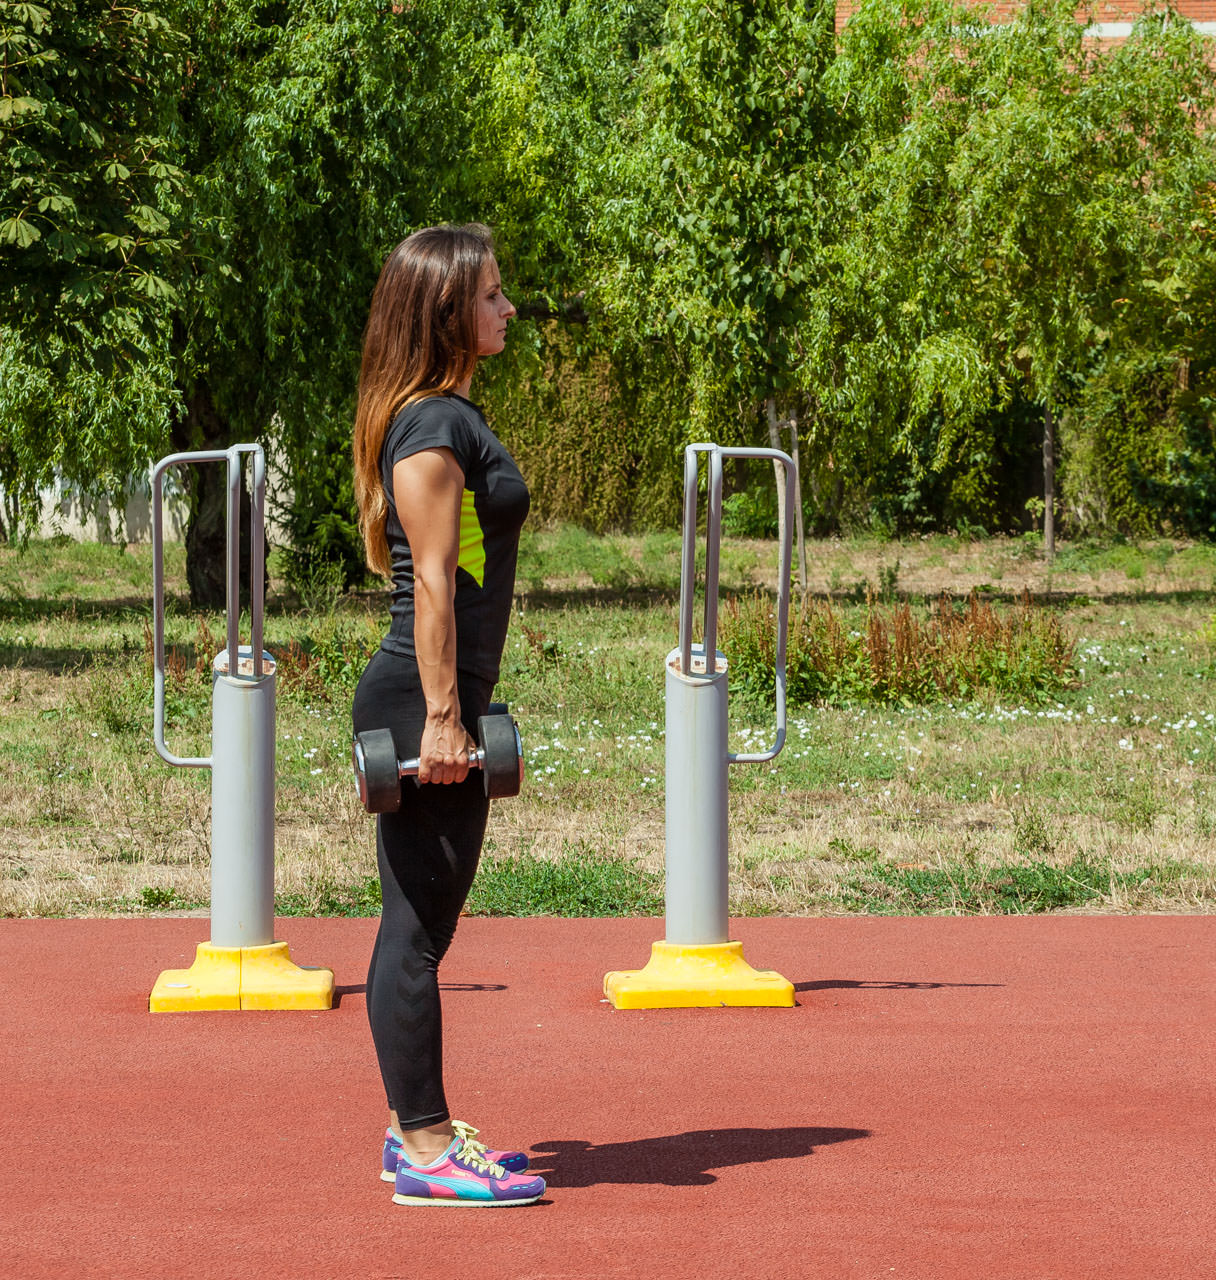 Dumbbell Lunges frame #1